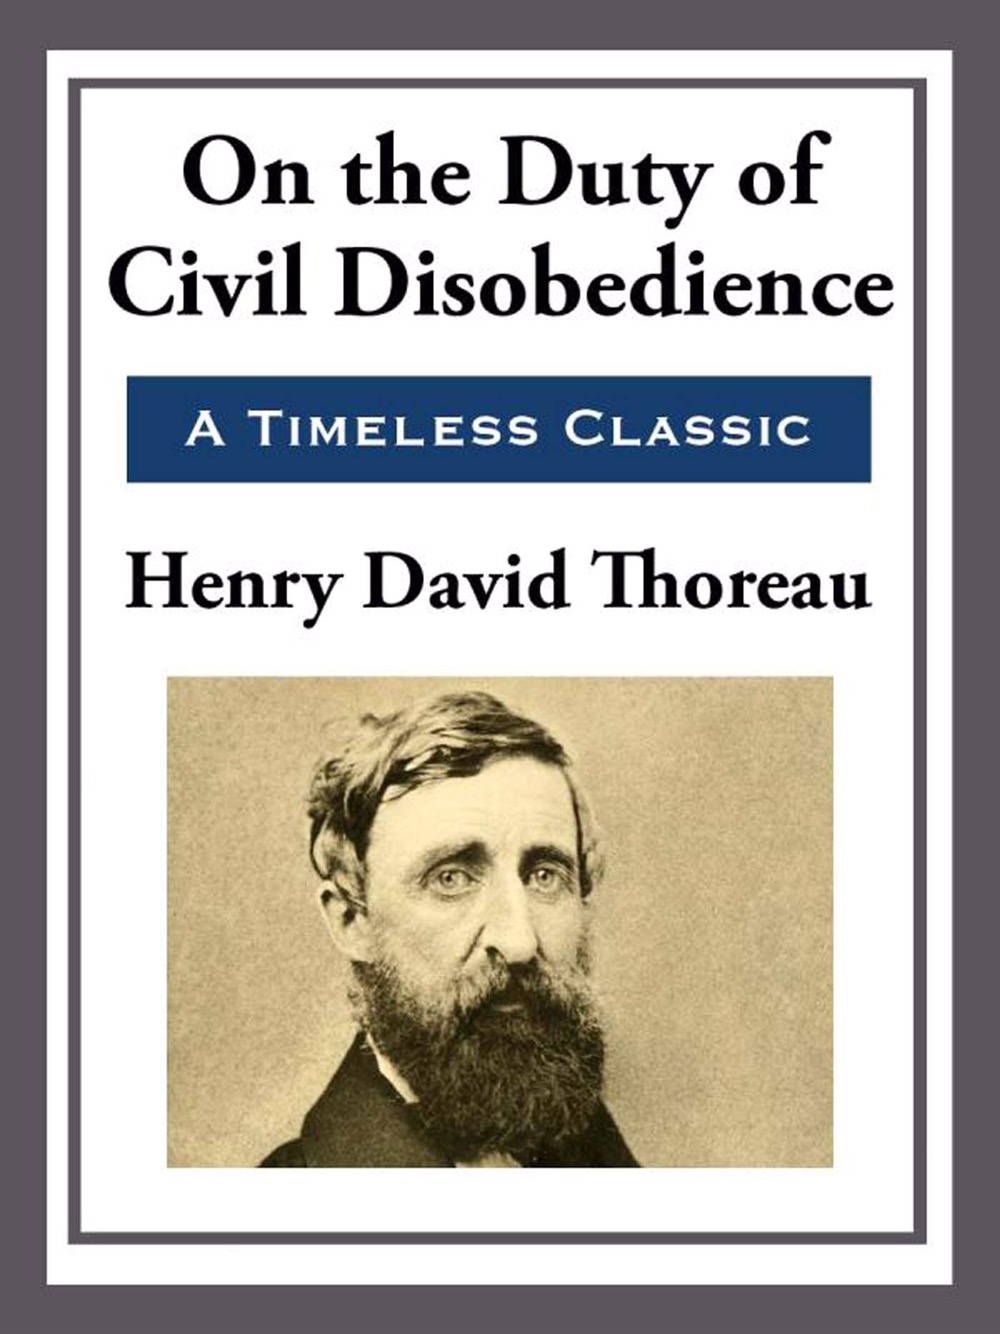 henry david thoreau civil disobedience essay 1849 karmic i heartily accept the motto that government is best which governs least and i should like to see it acted up to more rapidly and systematically